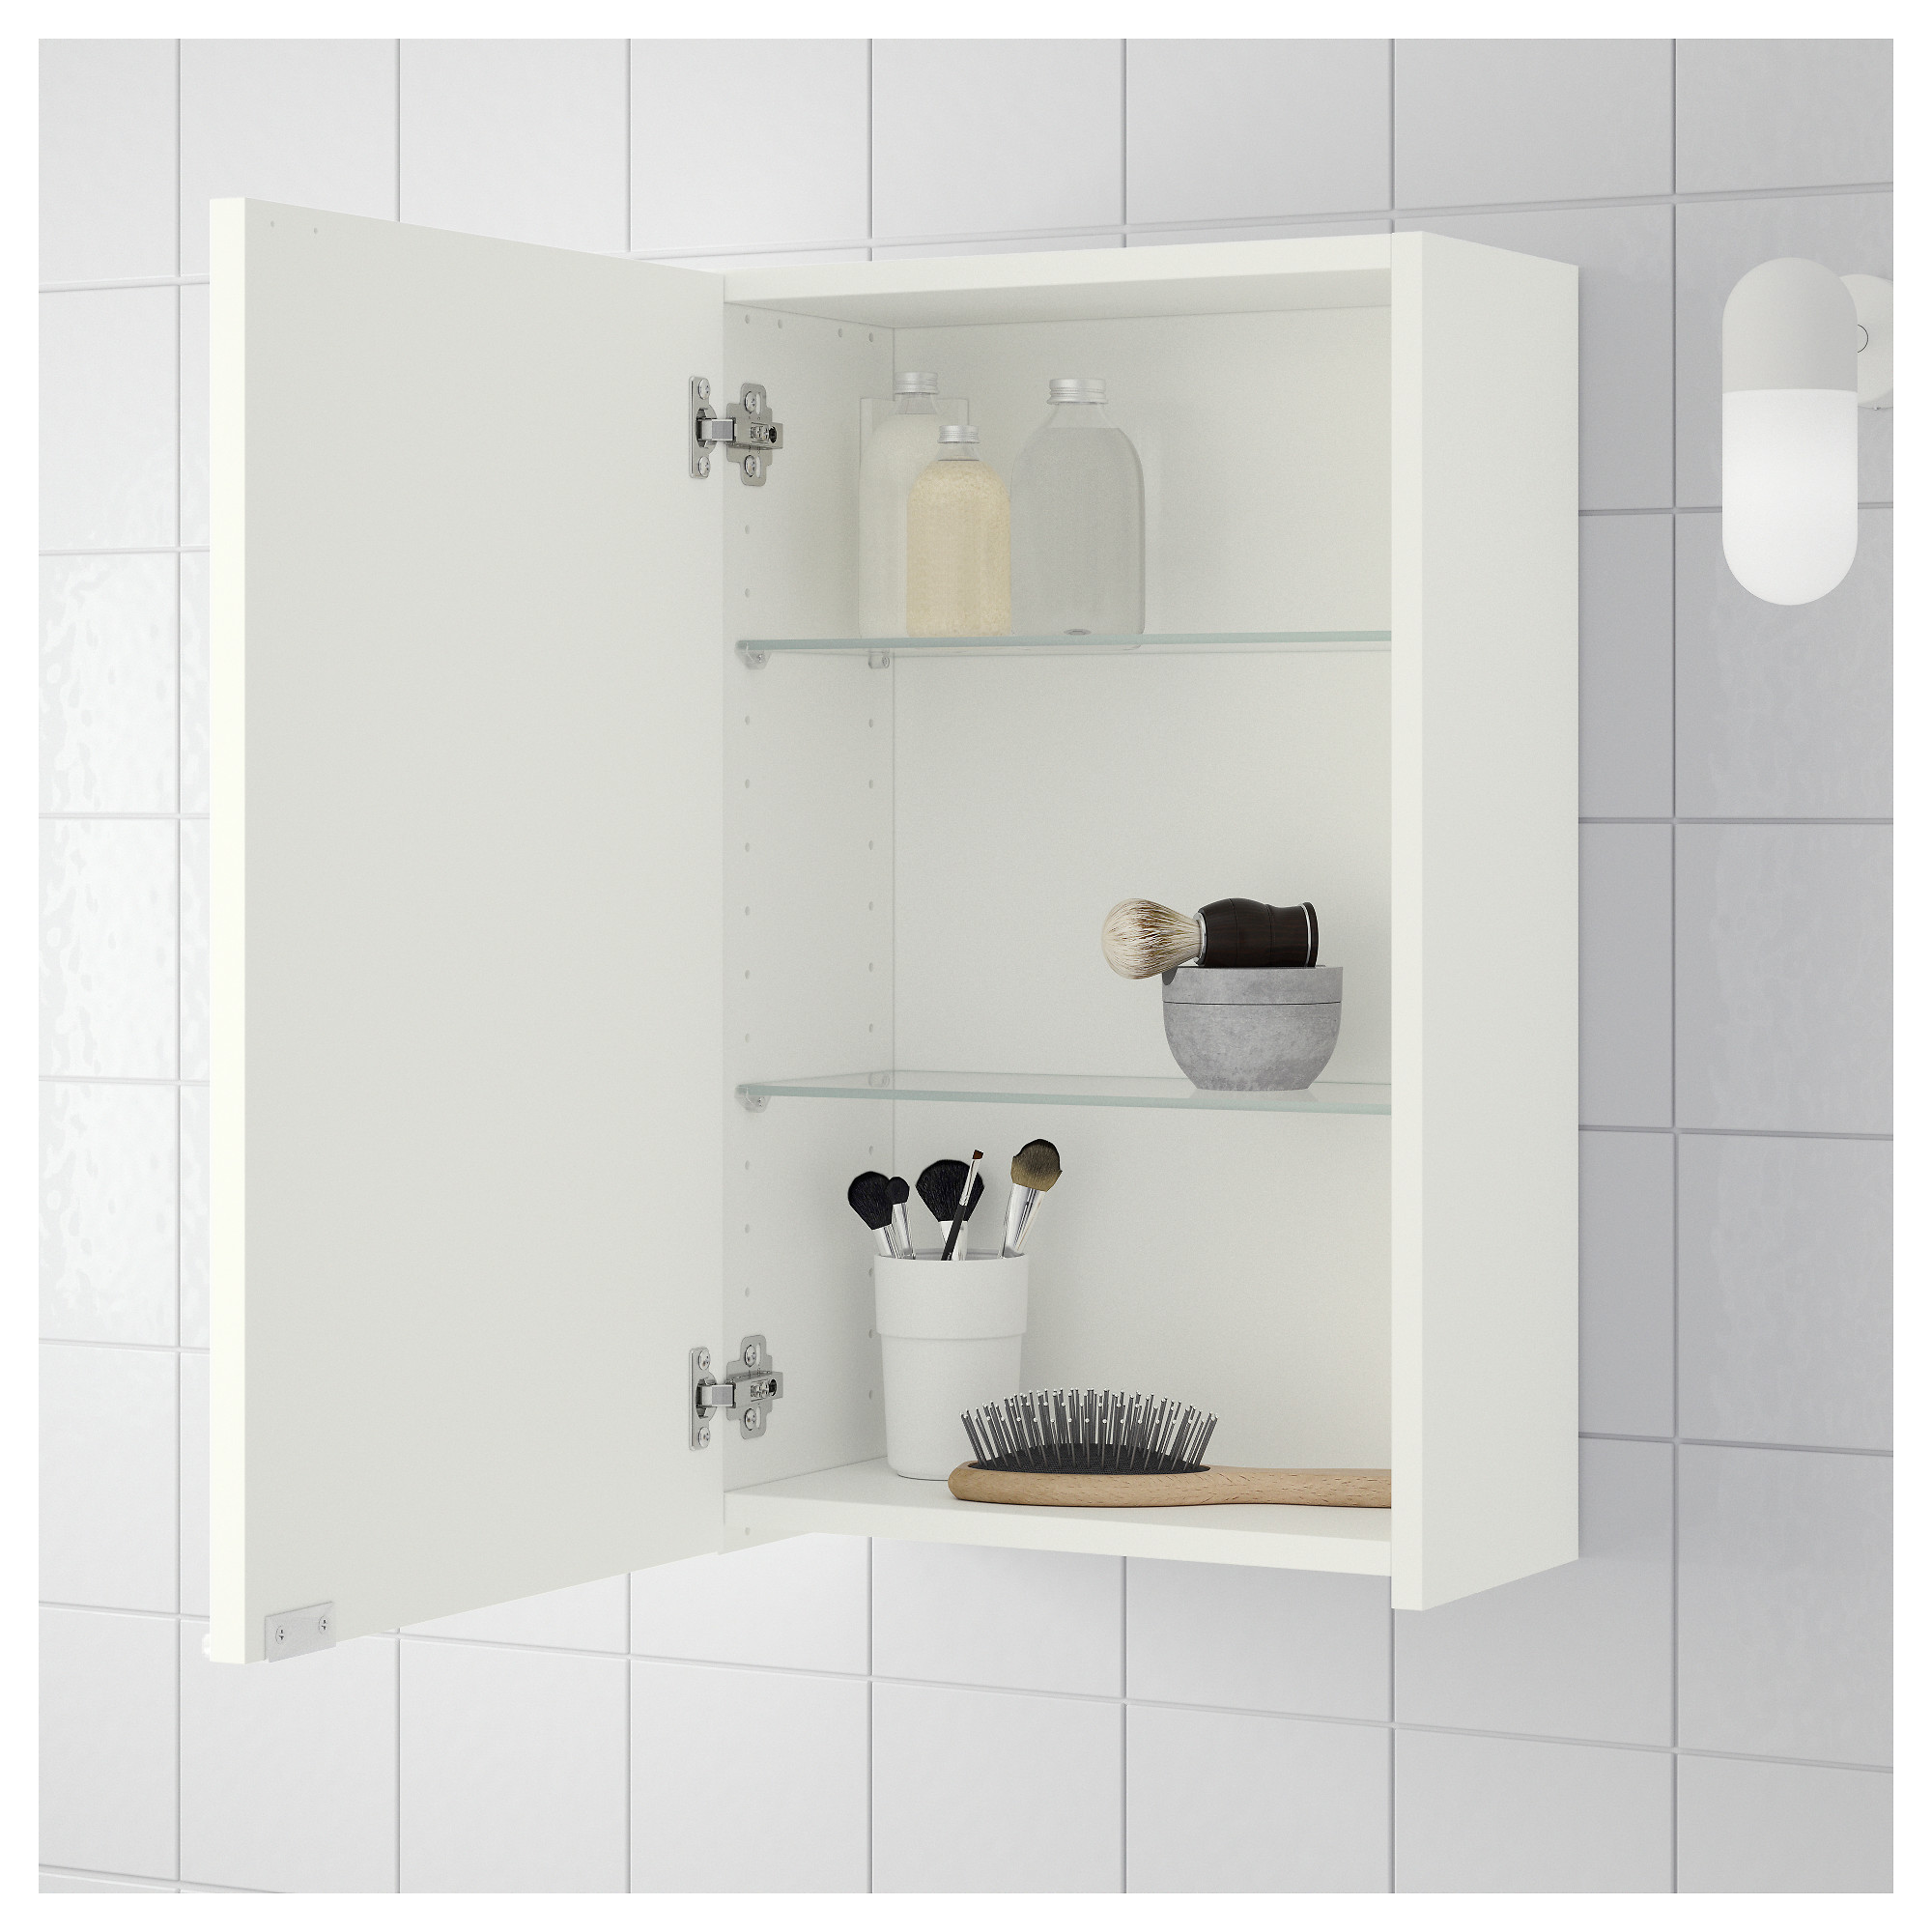 Bathroom wall cabinets ikea - Bathroom Wall Cabinets Ikea 14